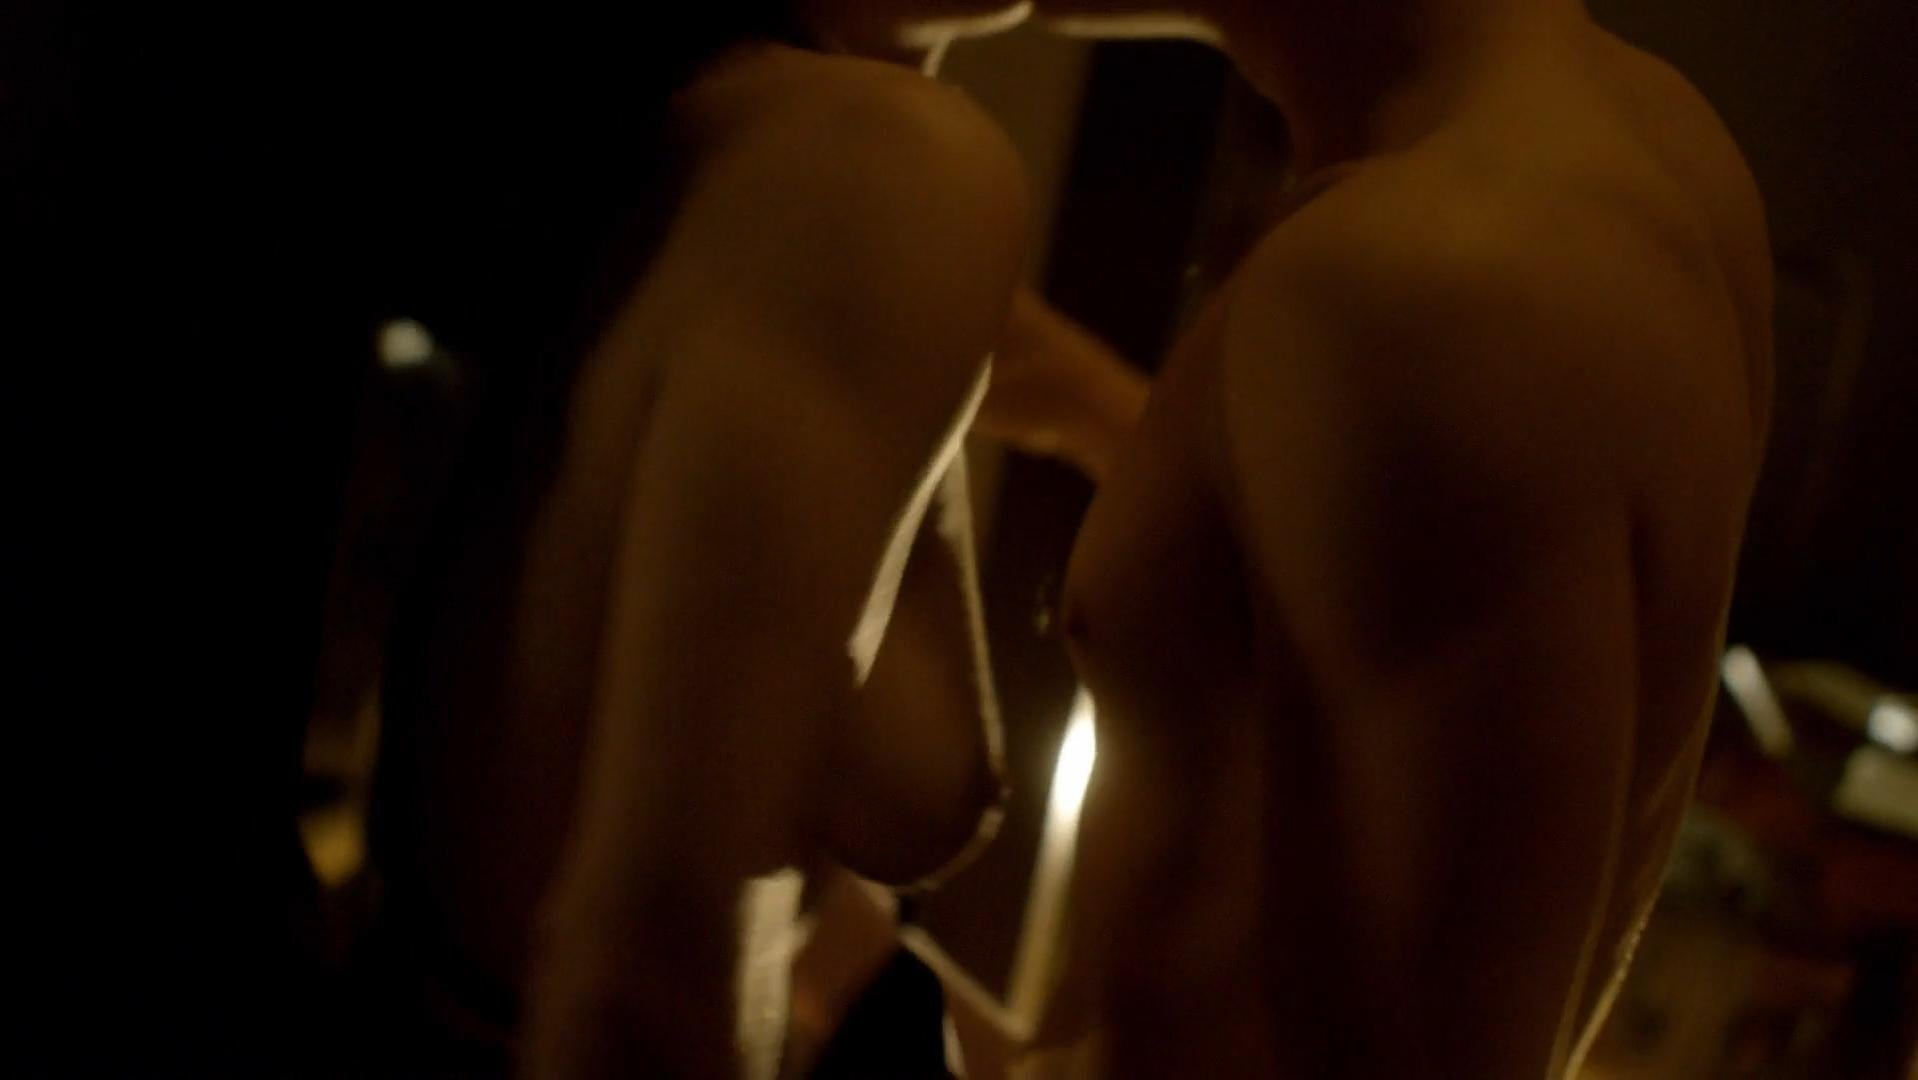 Antje Traue nude - Der Fall Barschel (2015)